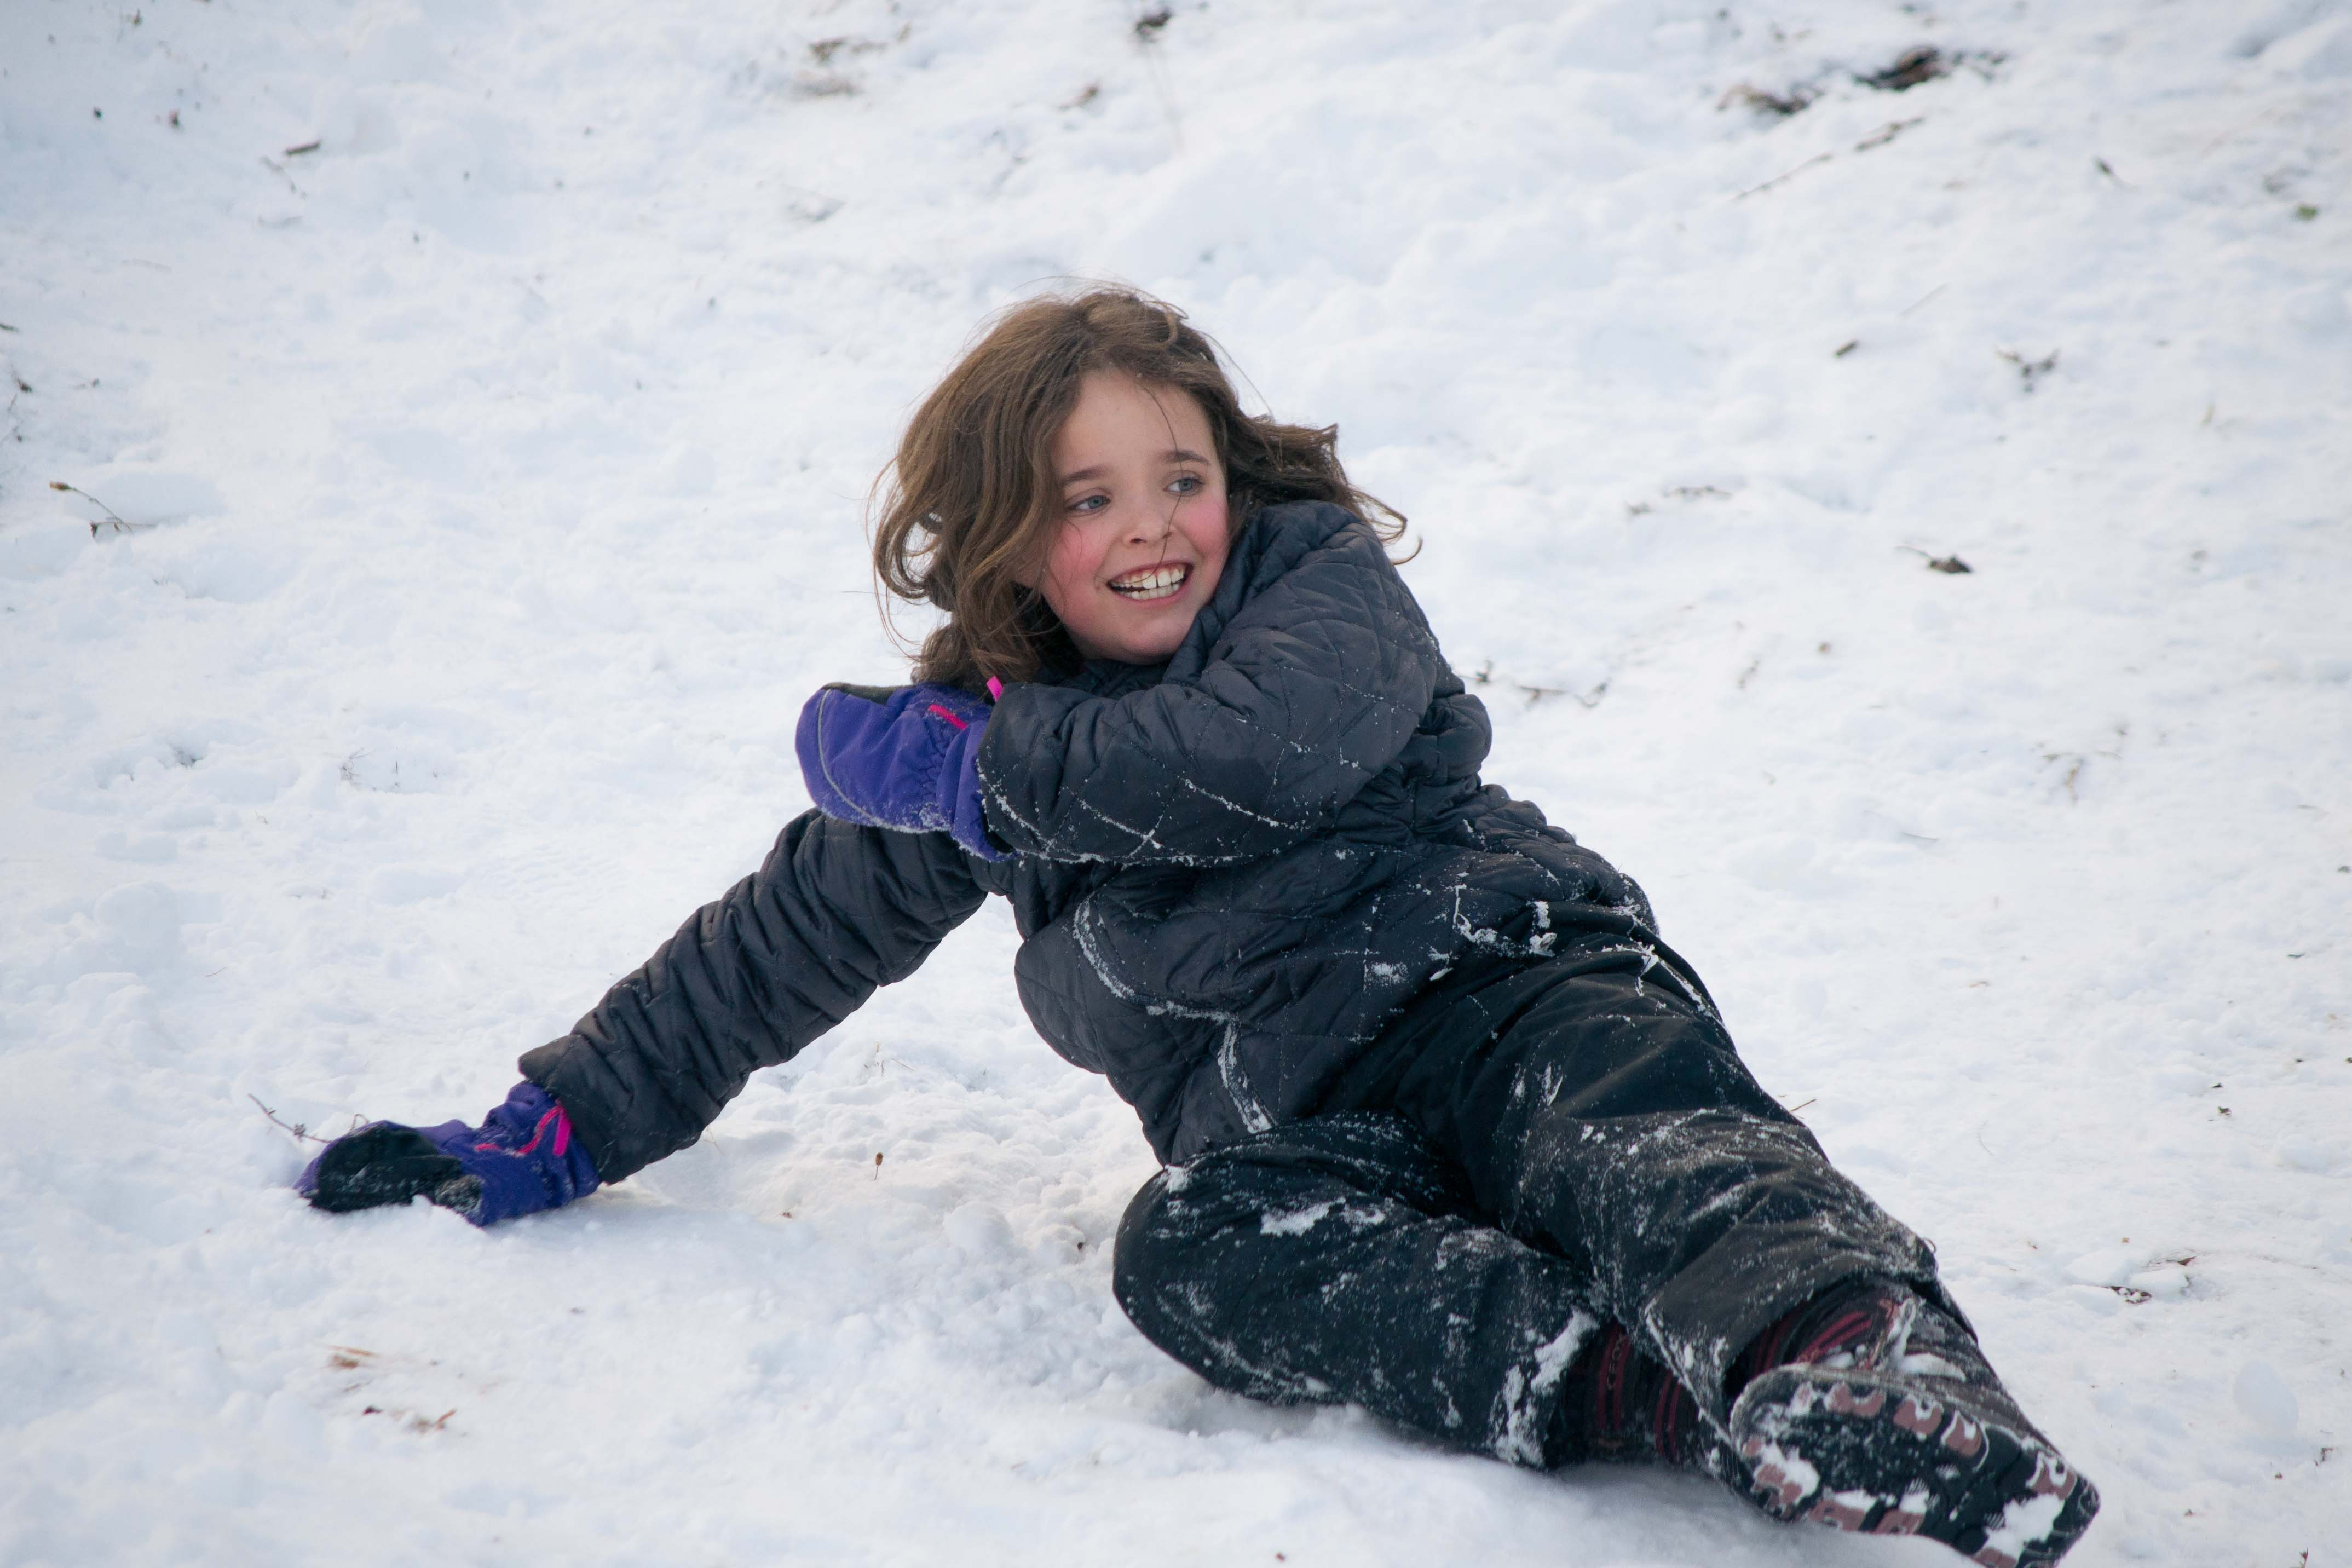 A young girl's winter sledding smile